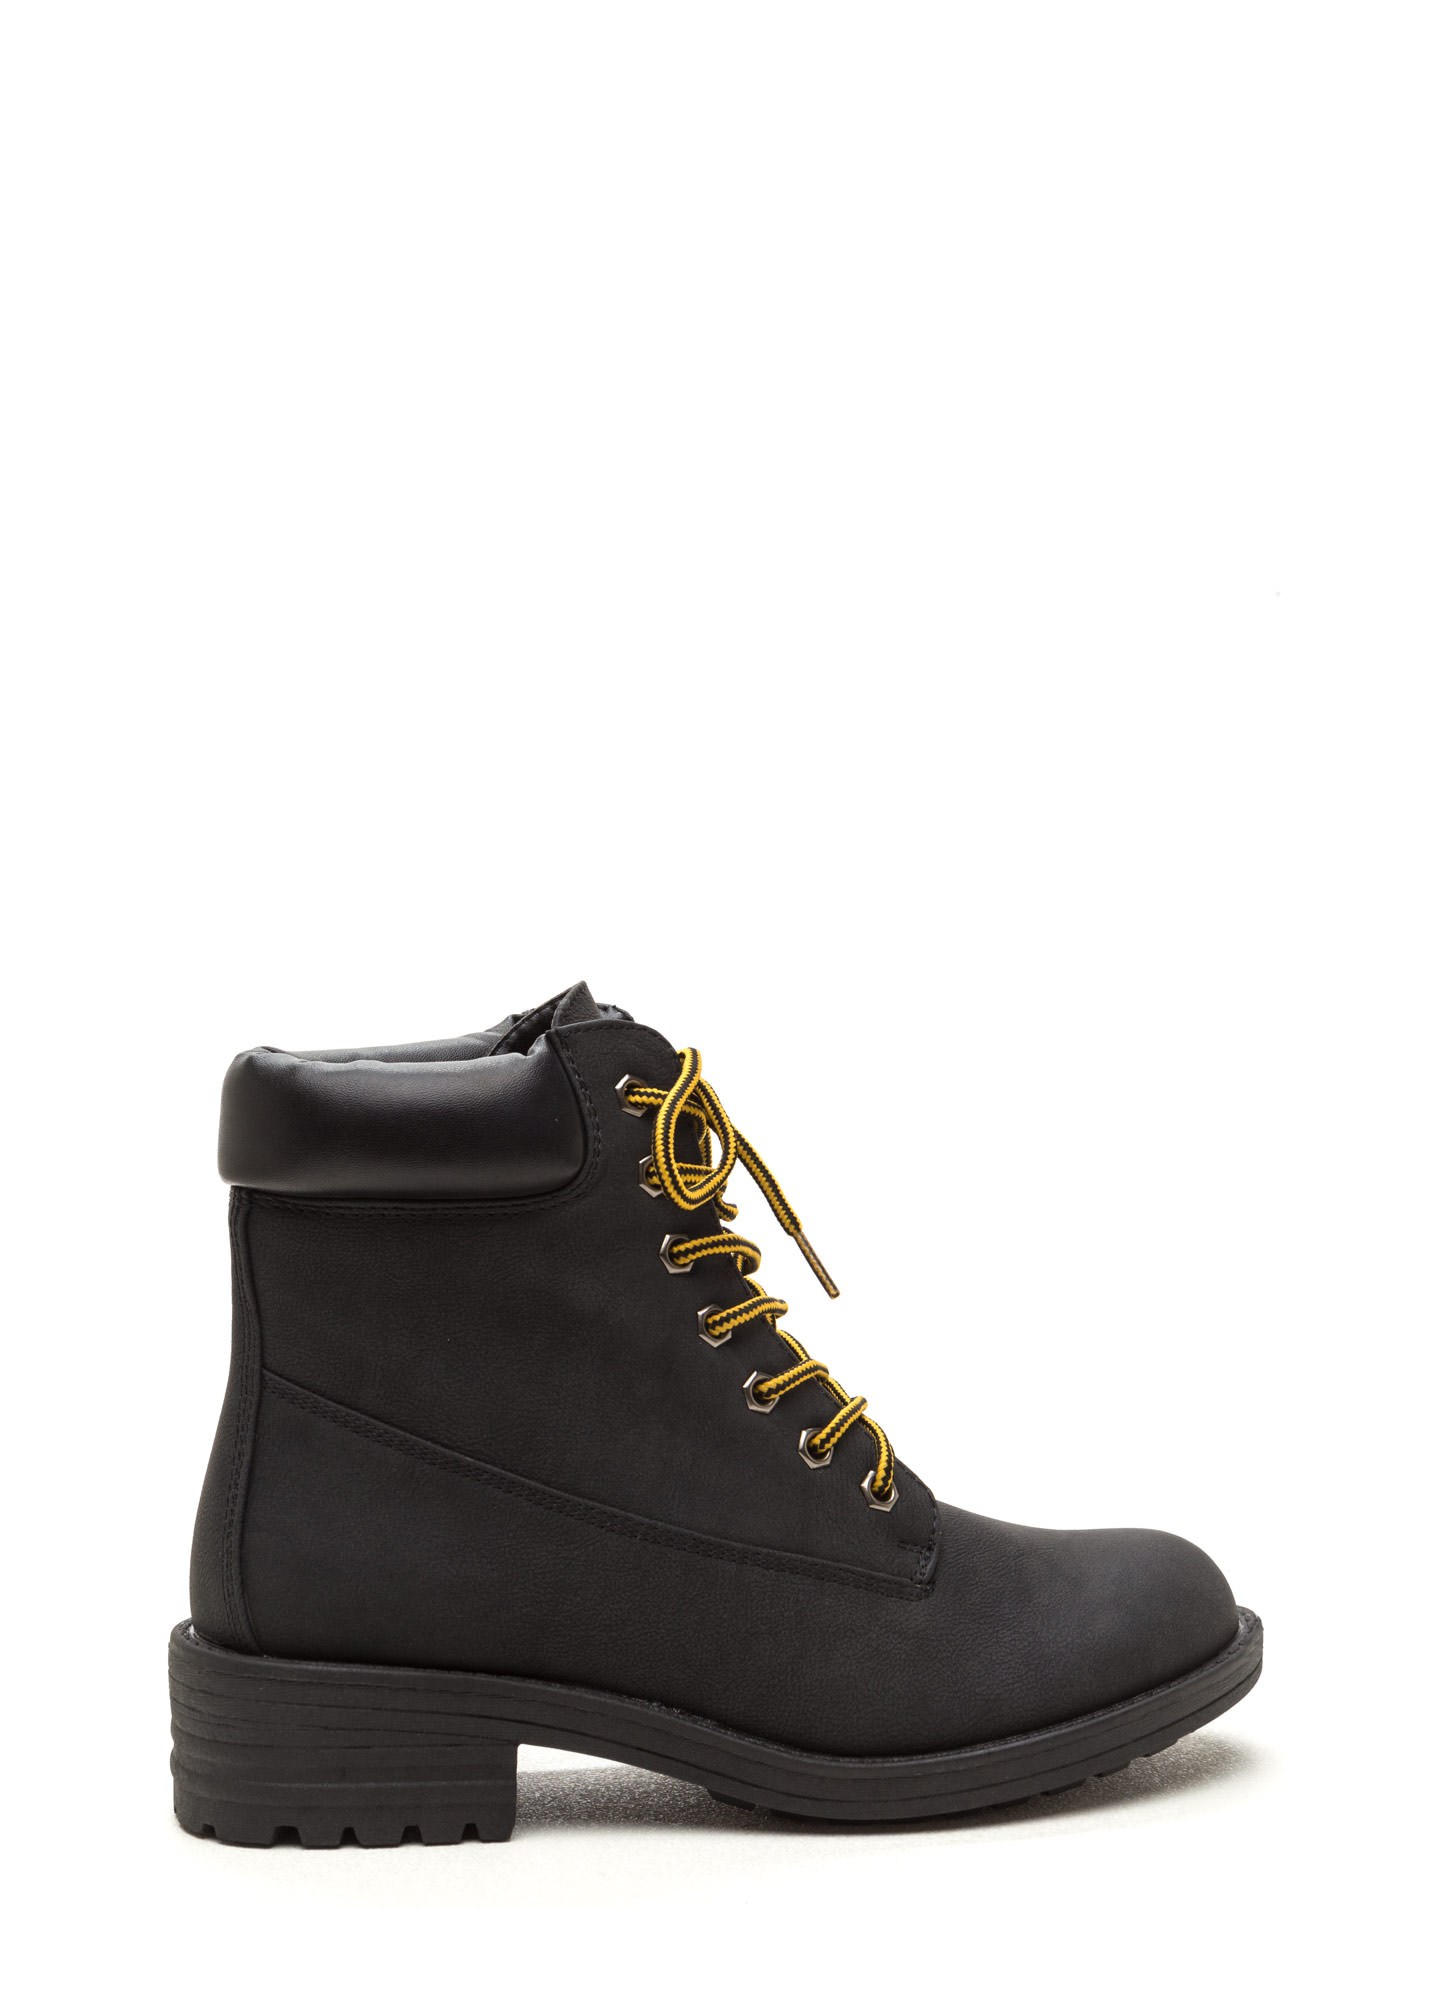 Take A Hike Lace Up Boots BLACK